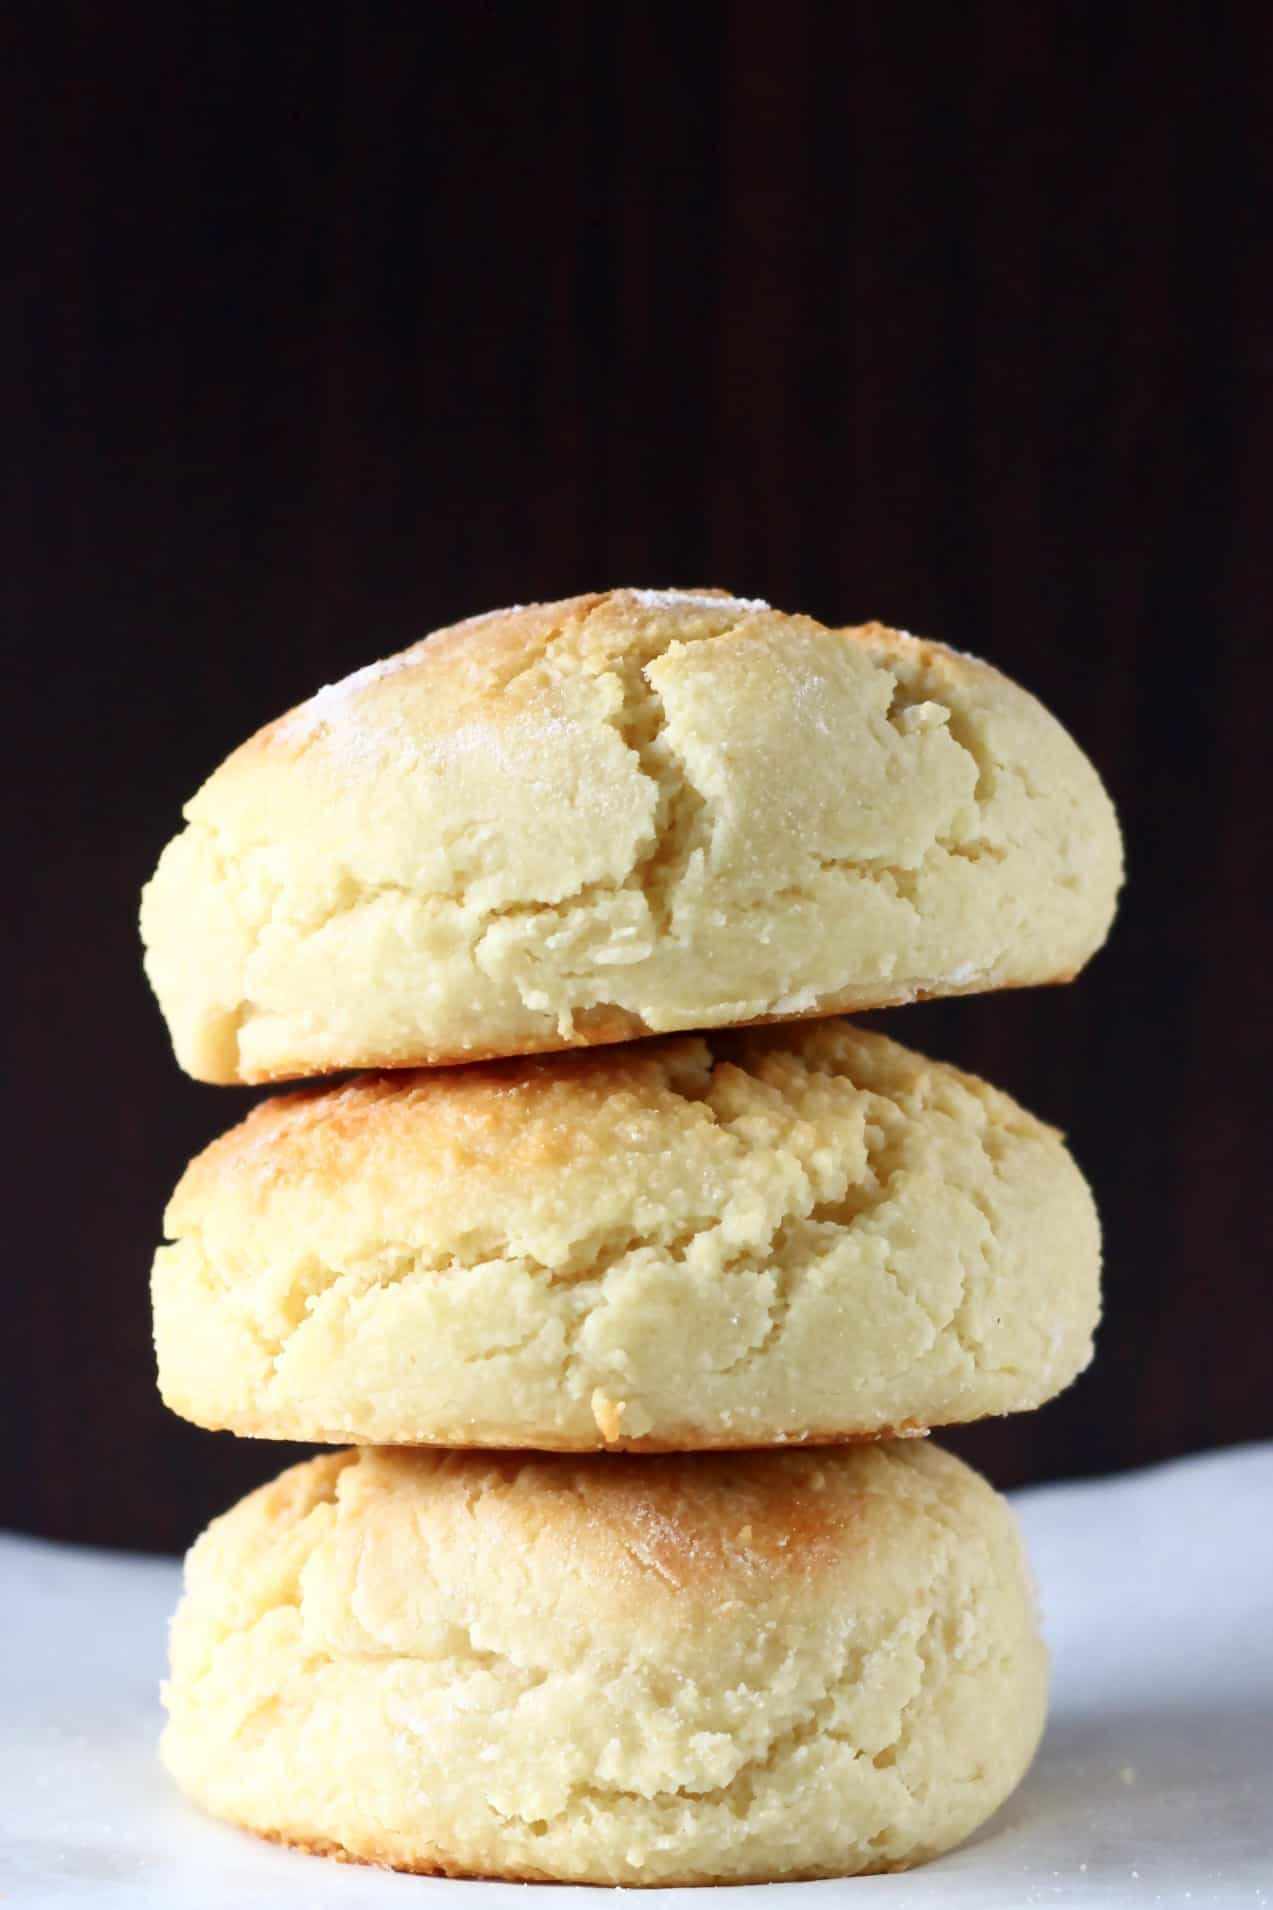 Three gluten-free vegan biscuits stacked on top of each other against a dark brown background